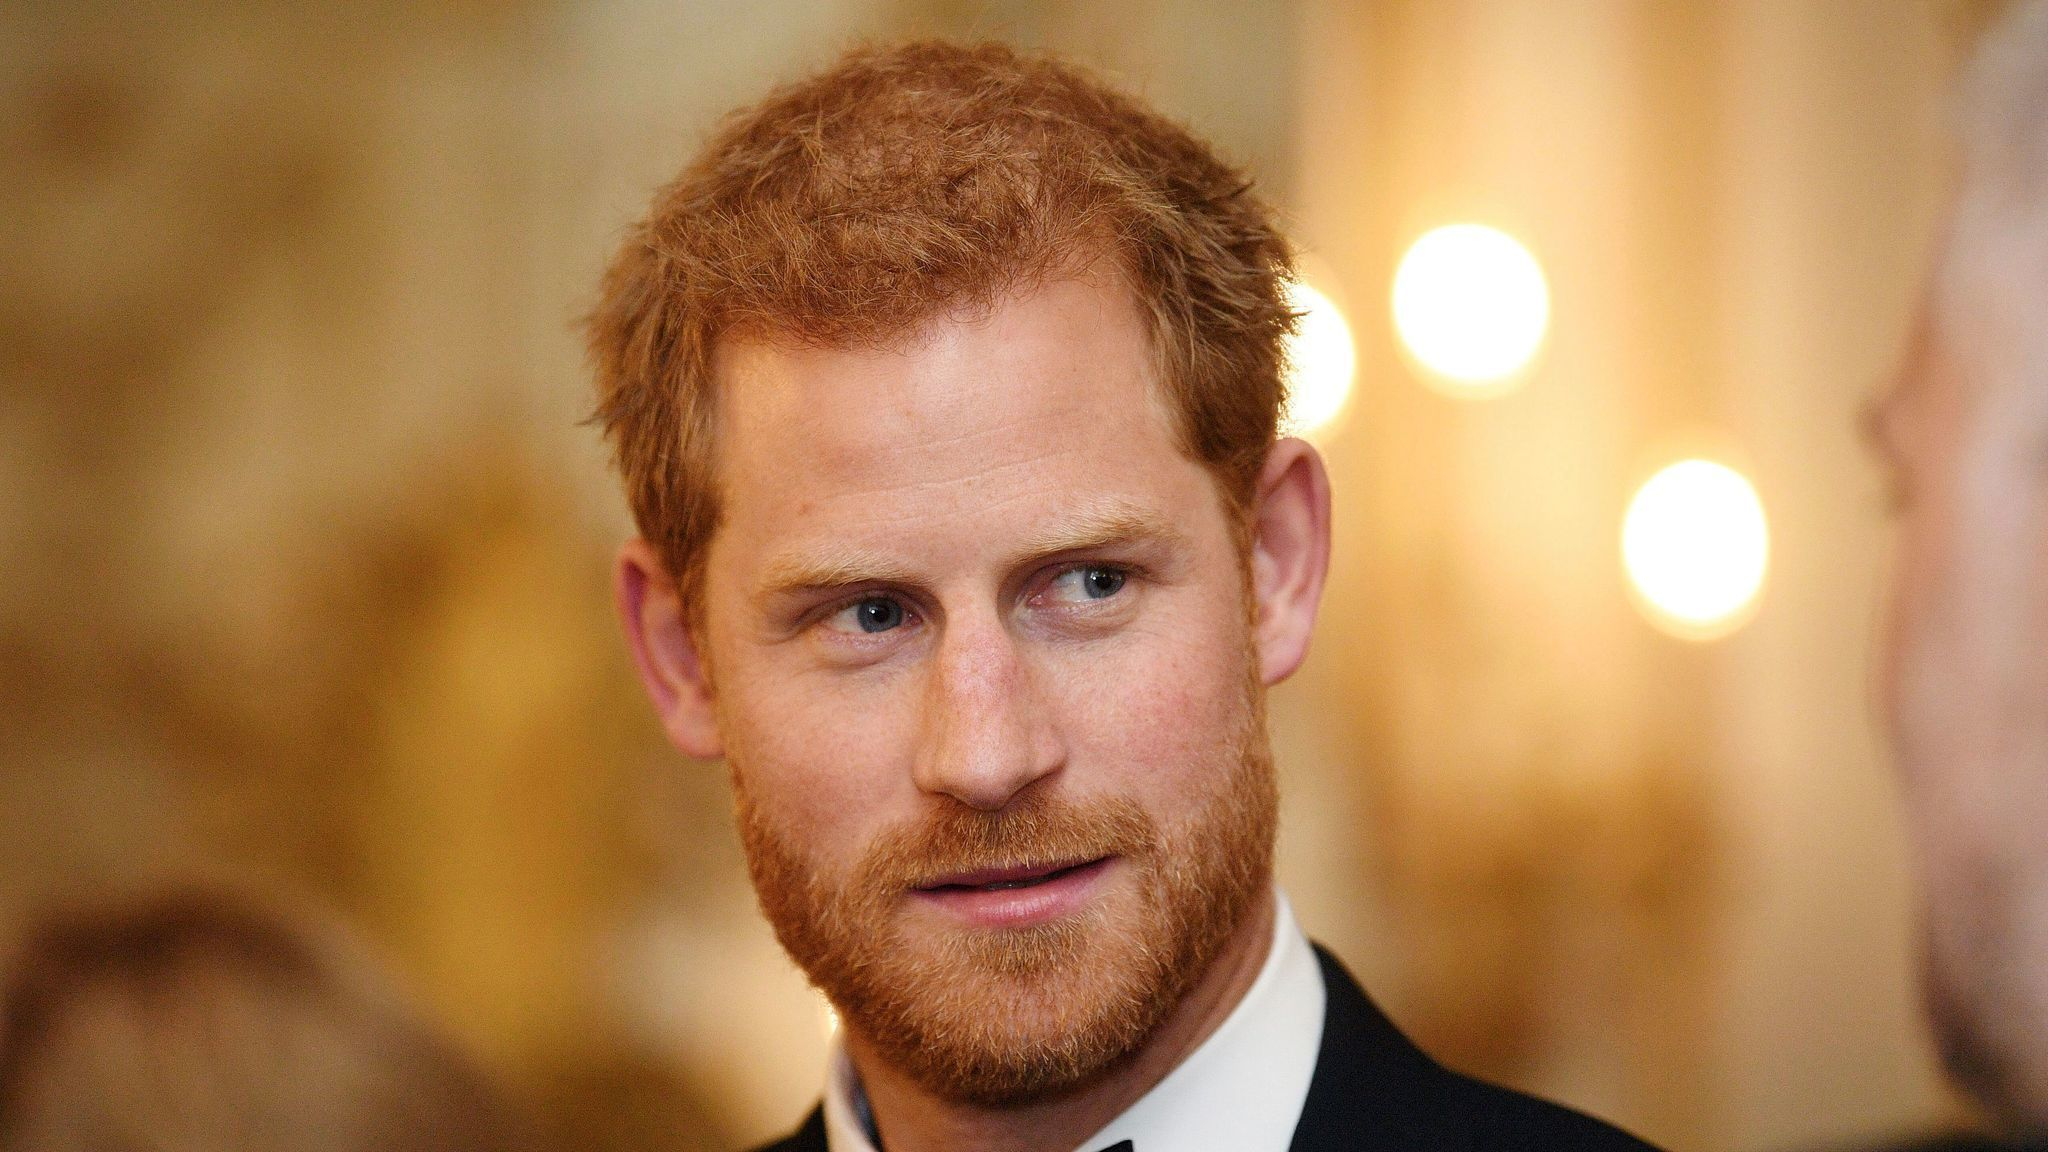 Prince Harry headed to Chicago to help Obama 'empower ... positive change' - Chicago Tribune